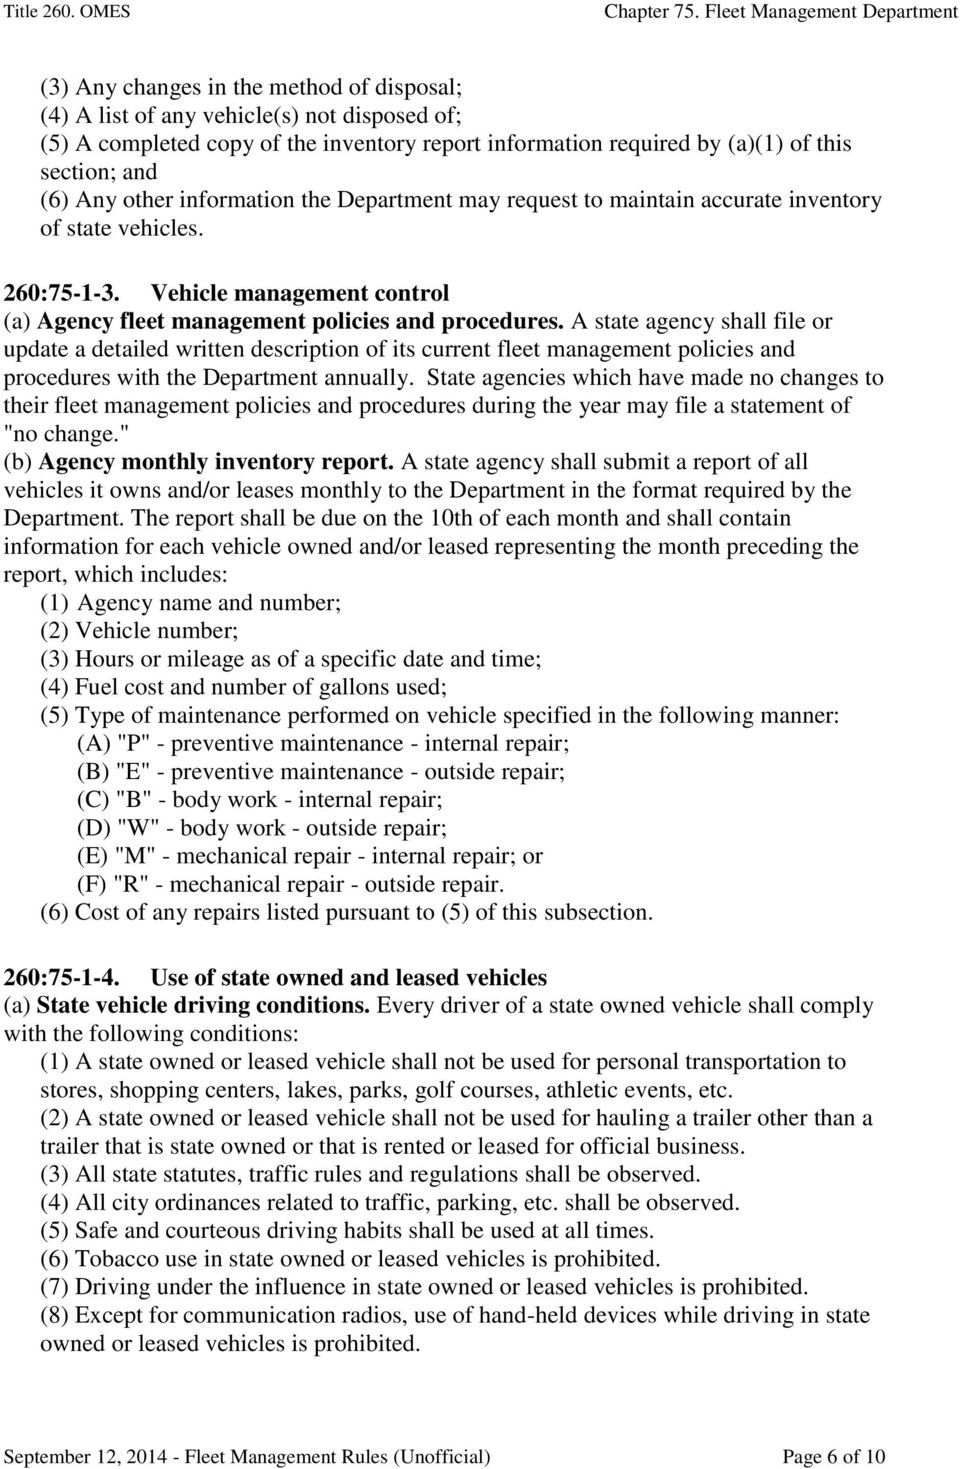 A state agency shall file or update a detailed written description of its current fleet management policies and procedures with the Department annually.